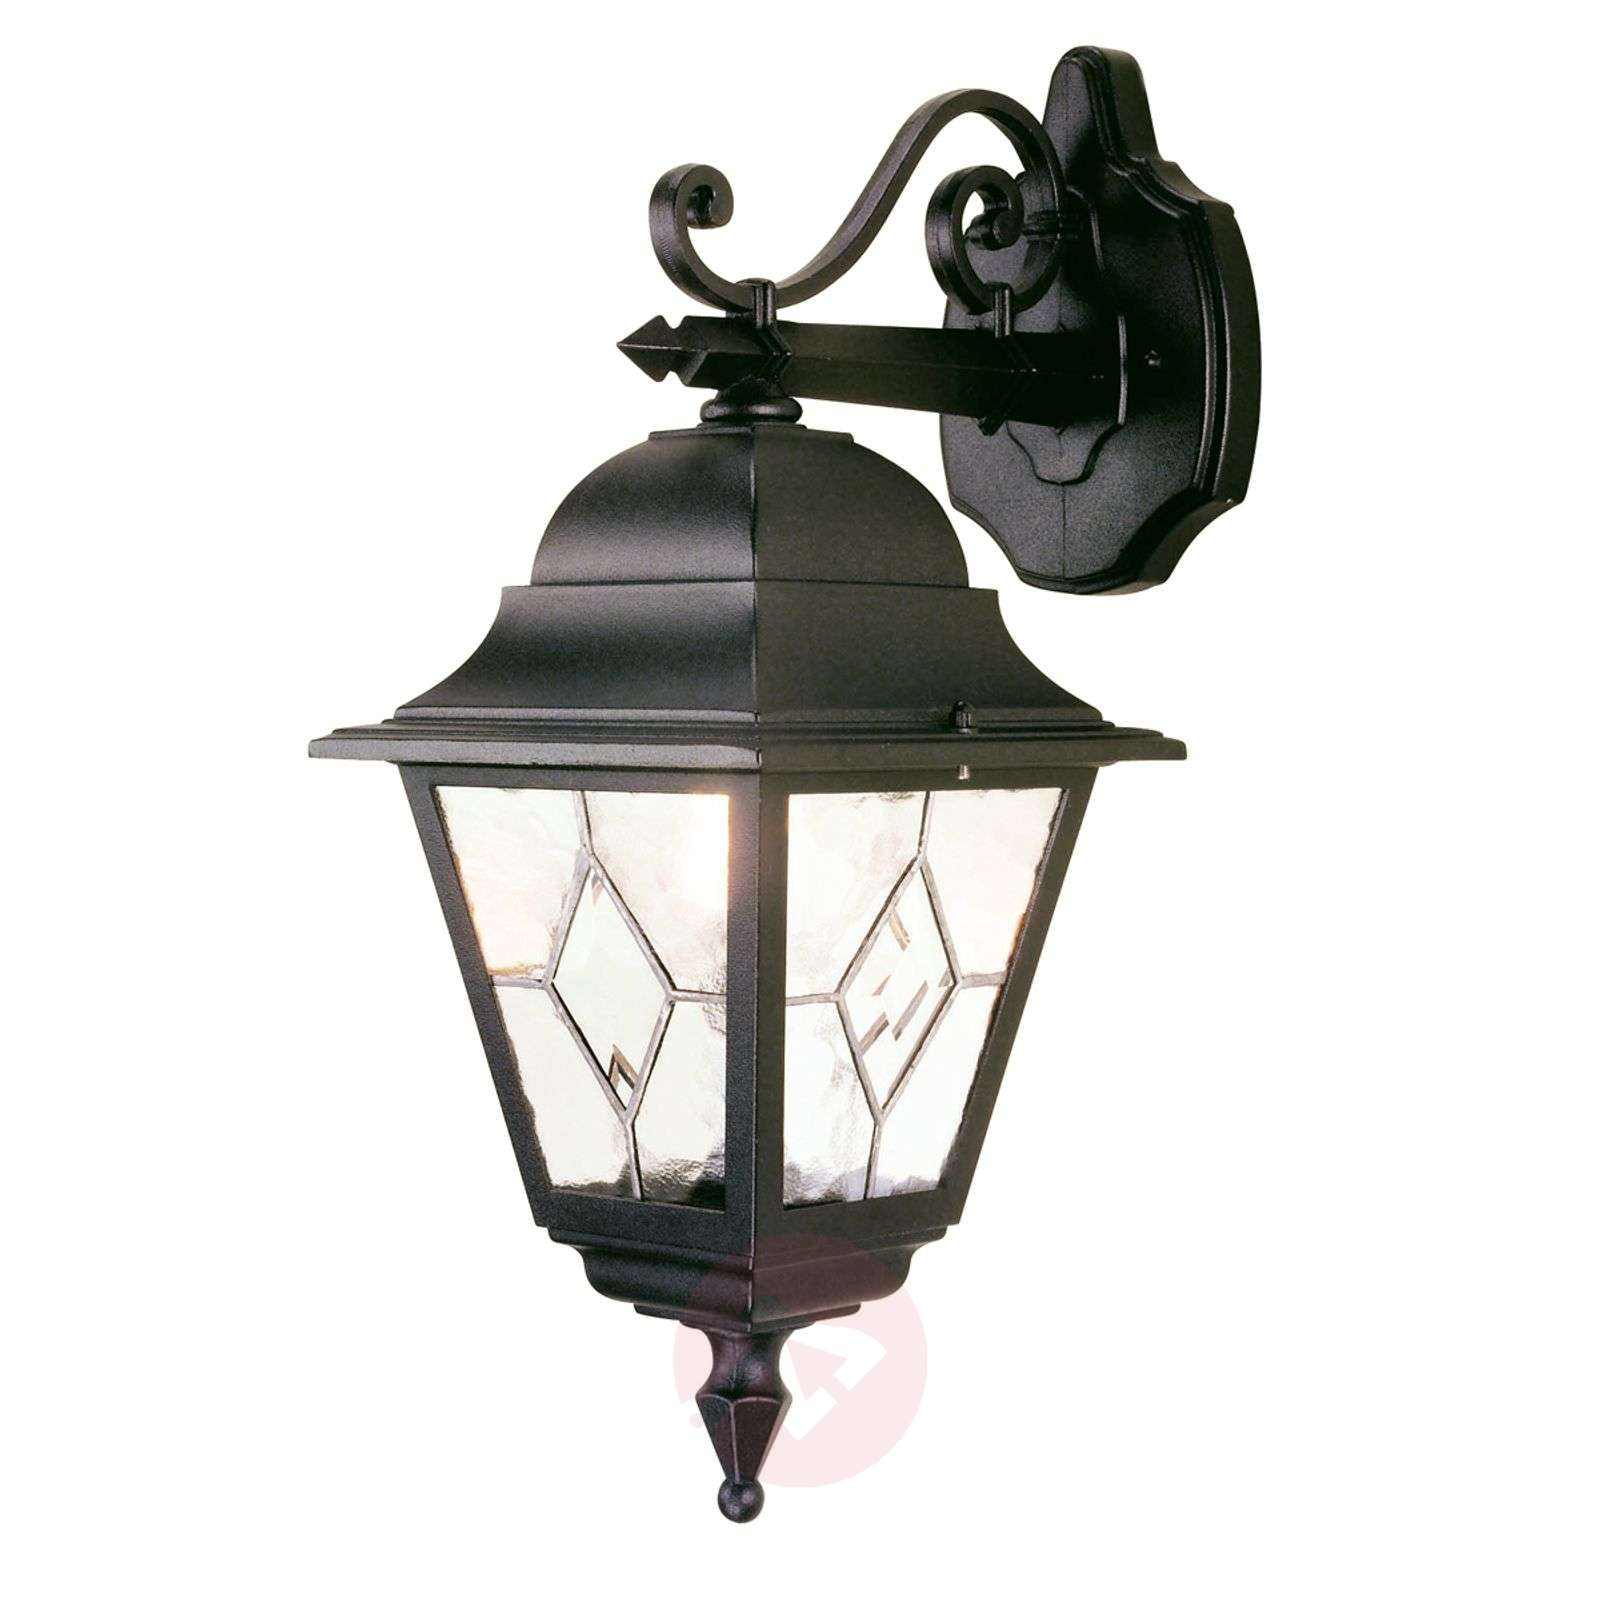 Norfolk outdoor wall light, leaded glass-3048424-01